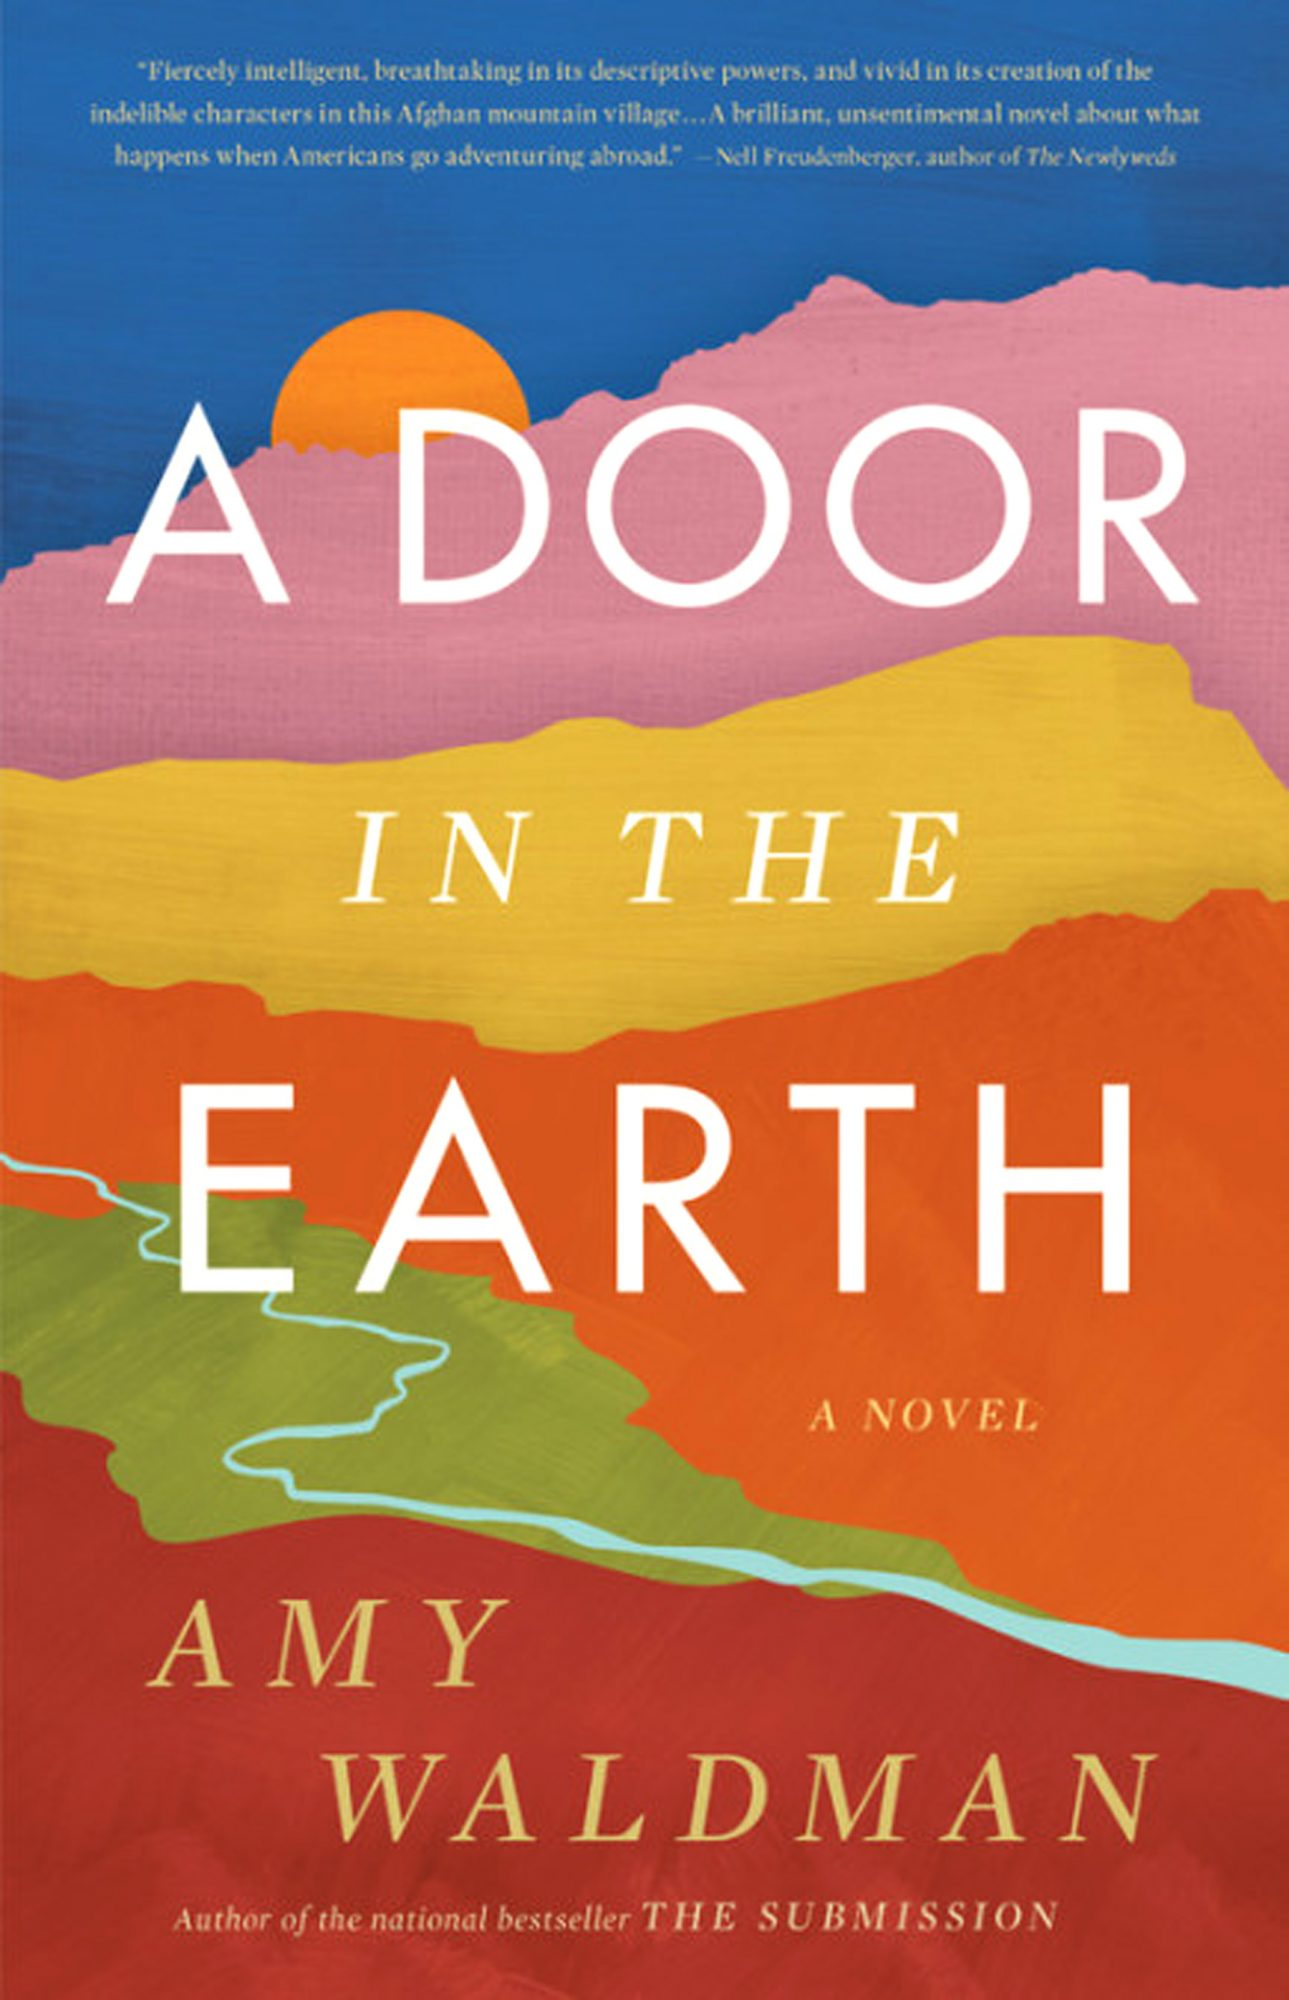 A Door in the Earth, by Amy Waldman